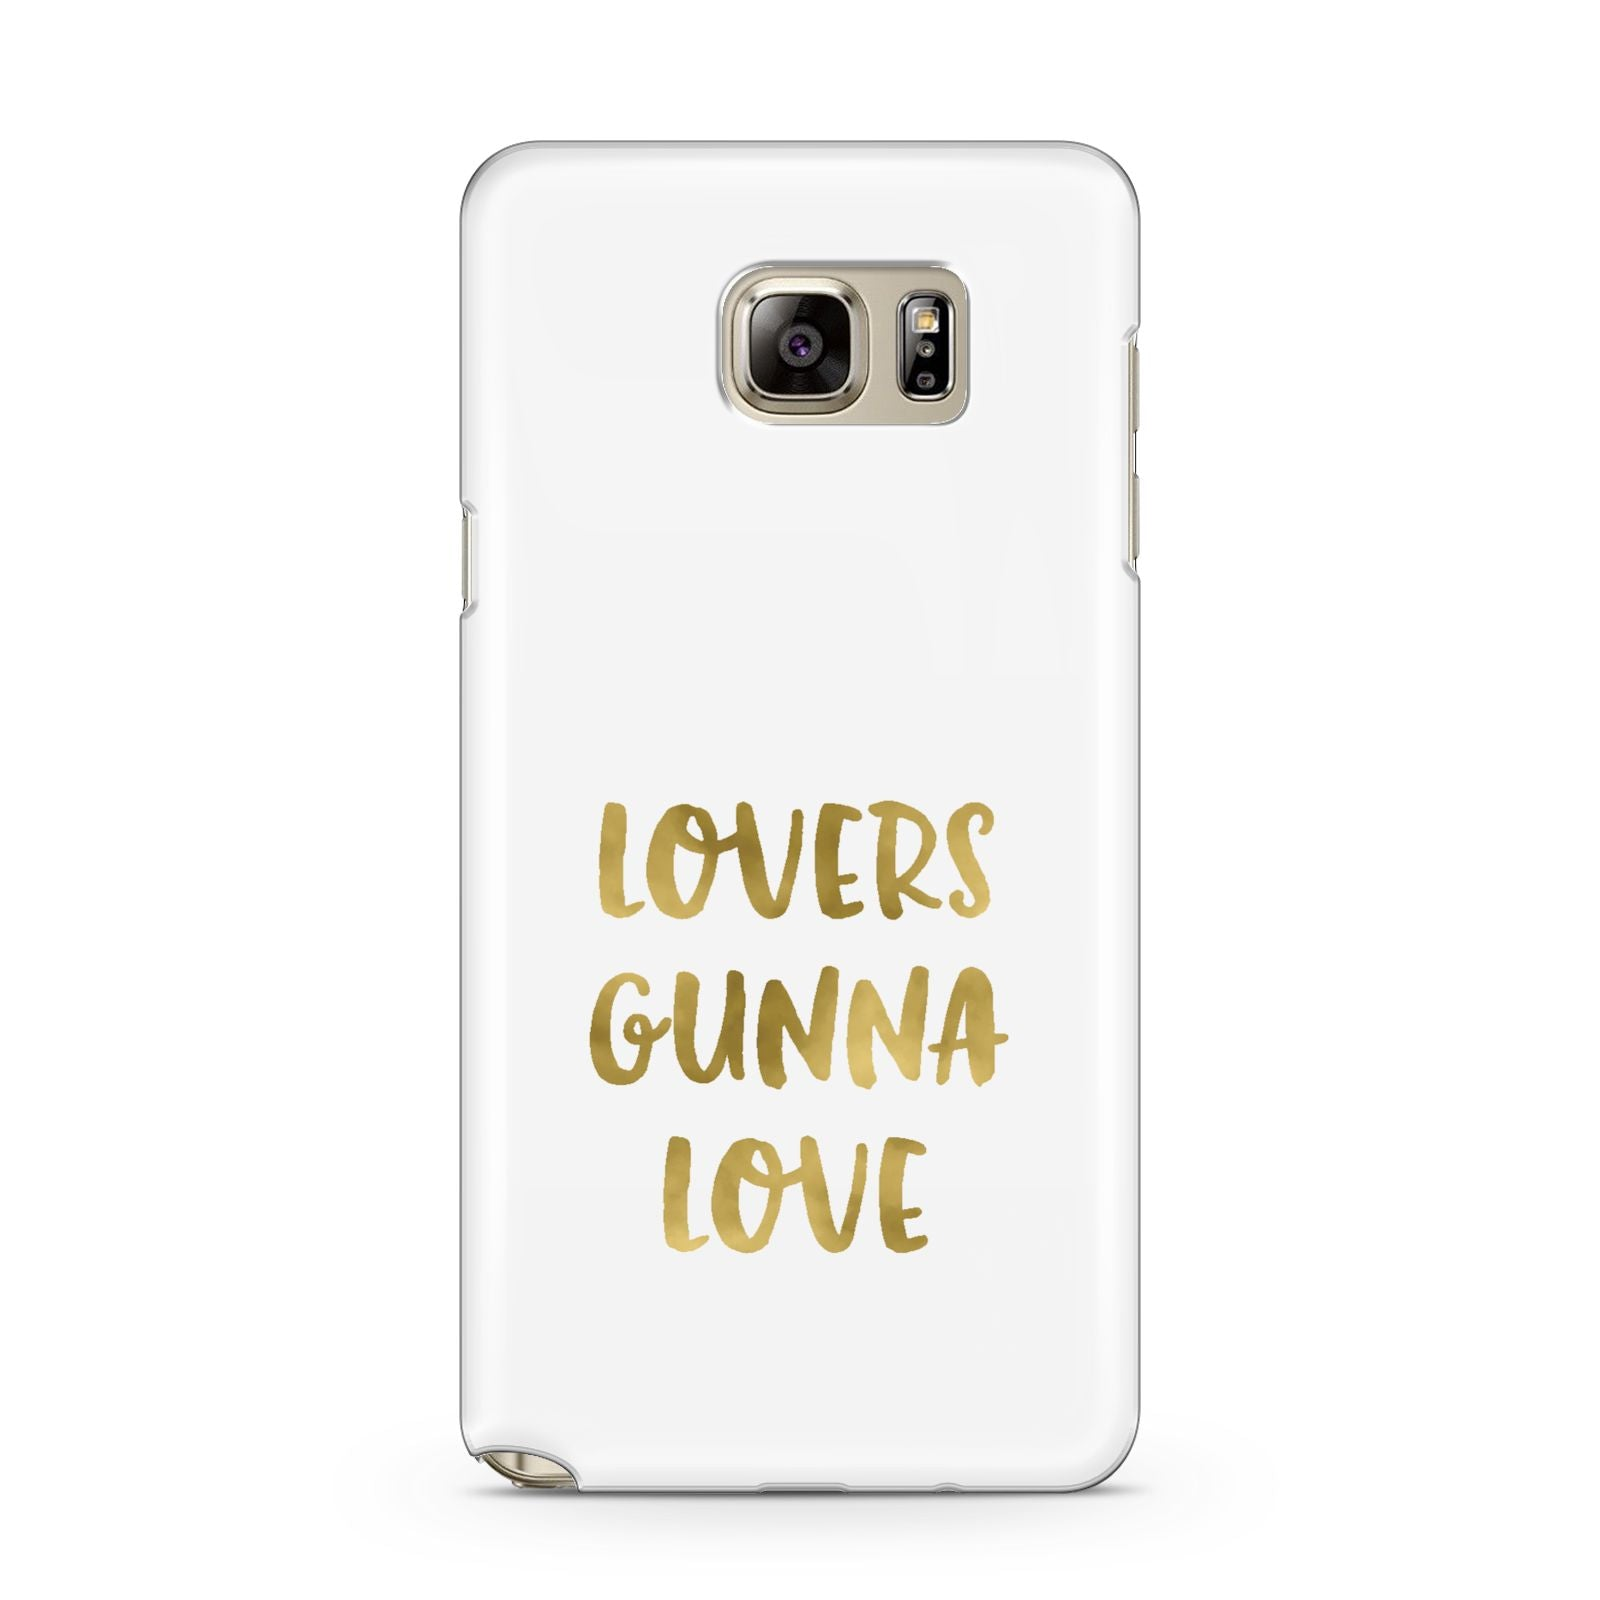 Lovers Gunna Love Real Gold Foil Samsung Galaxy Note 5 Case